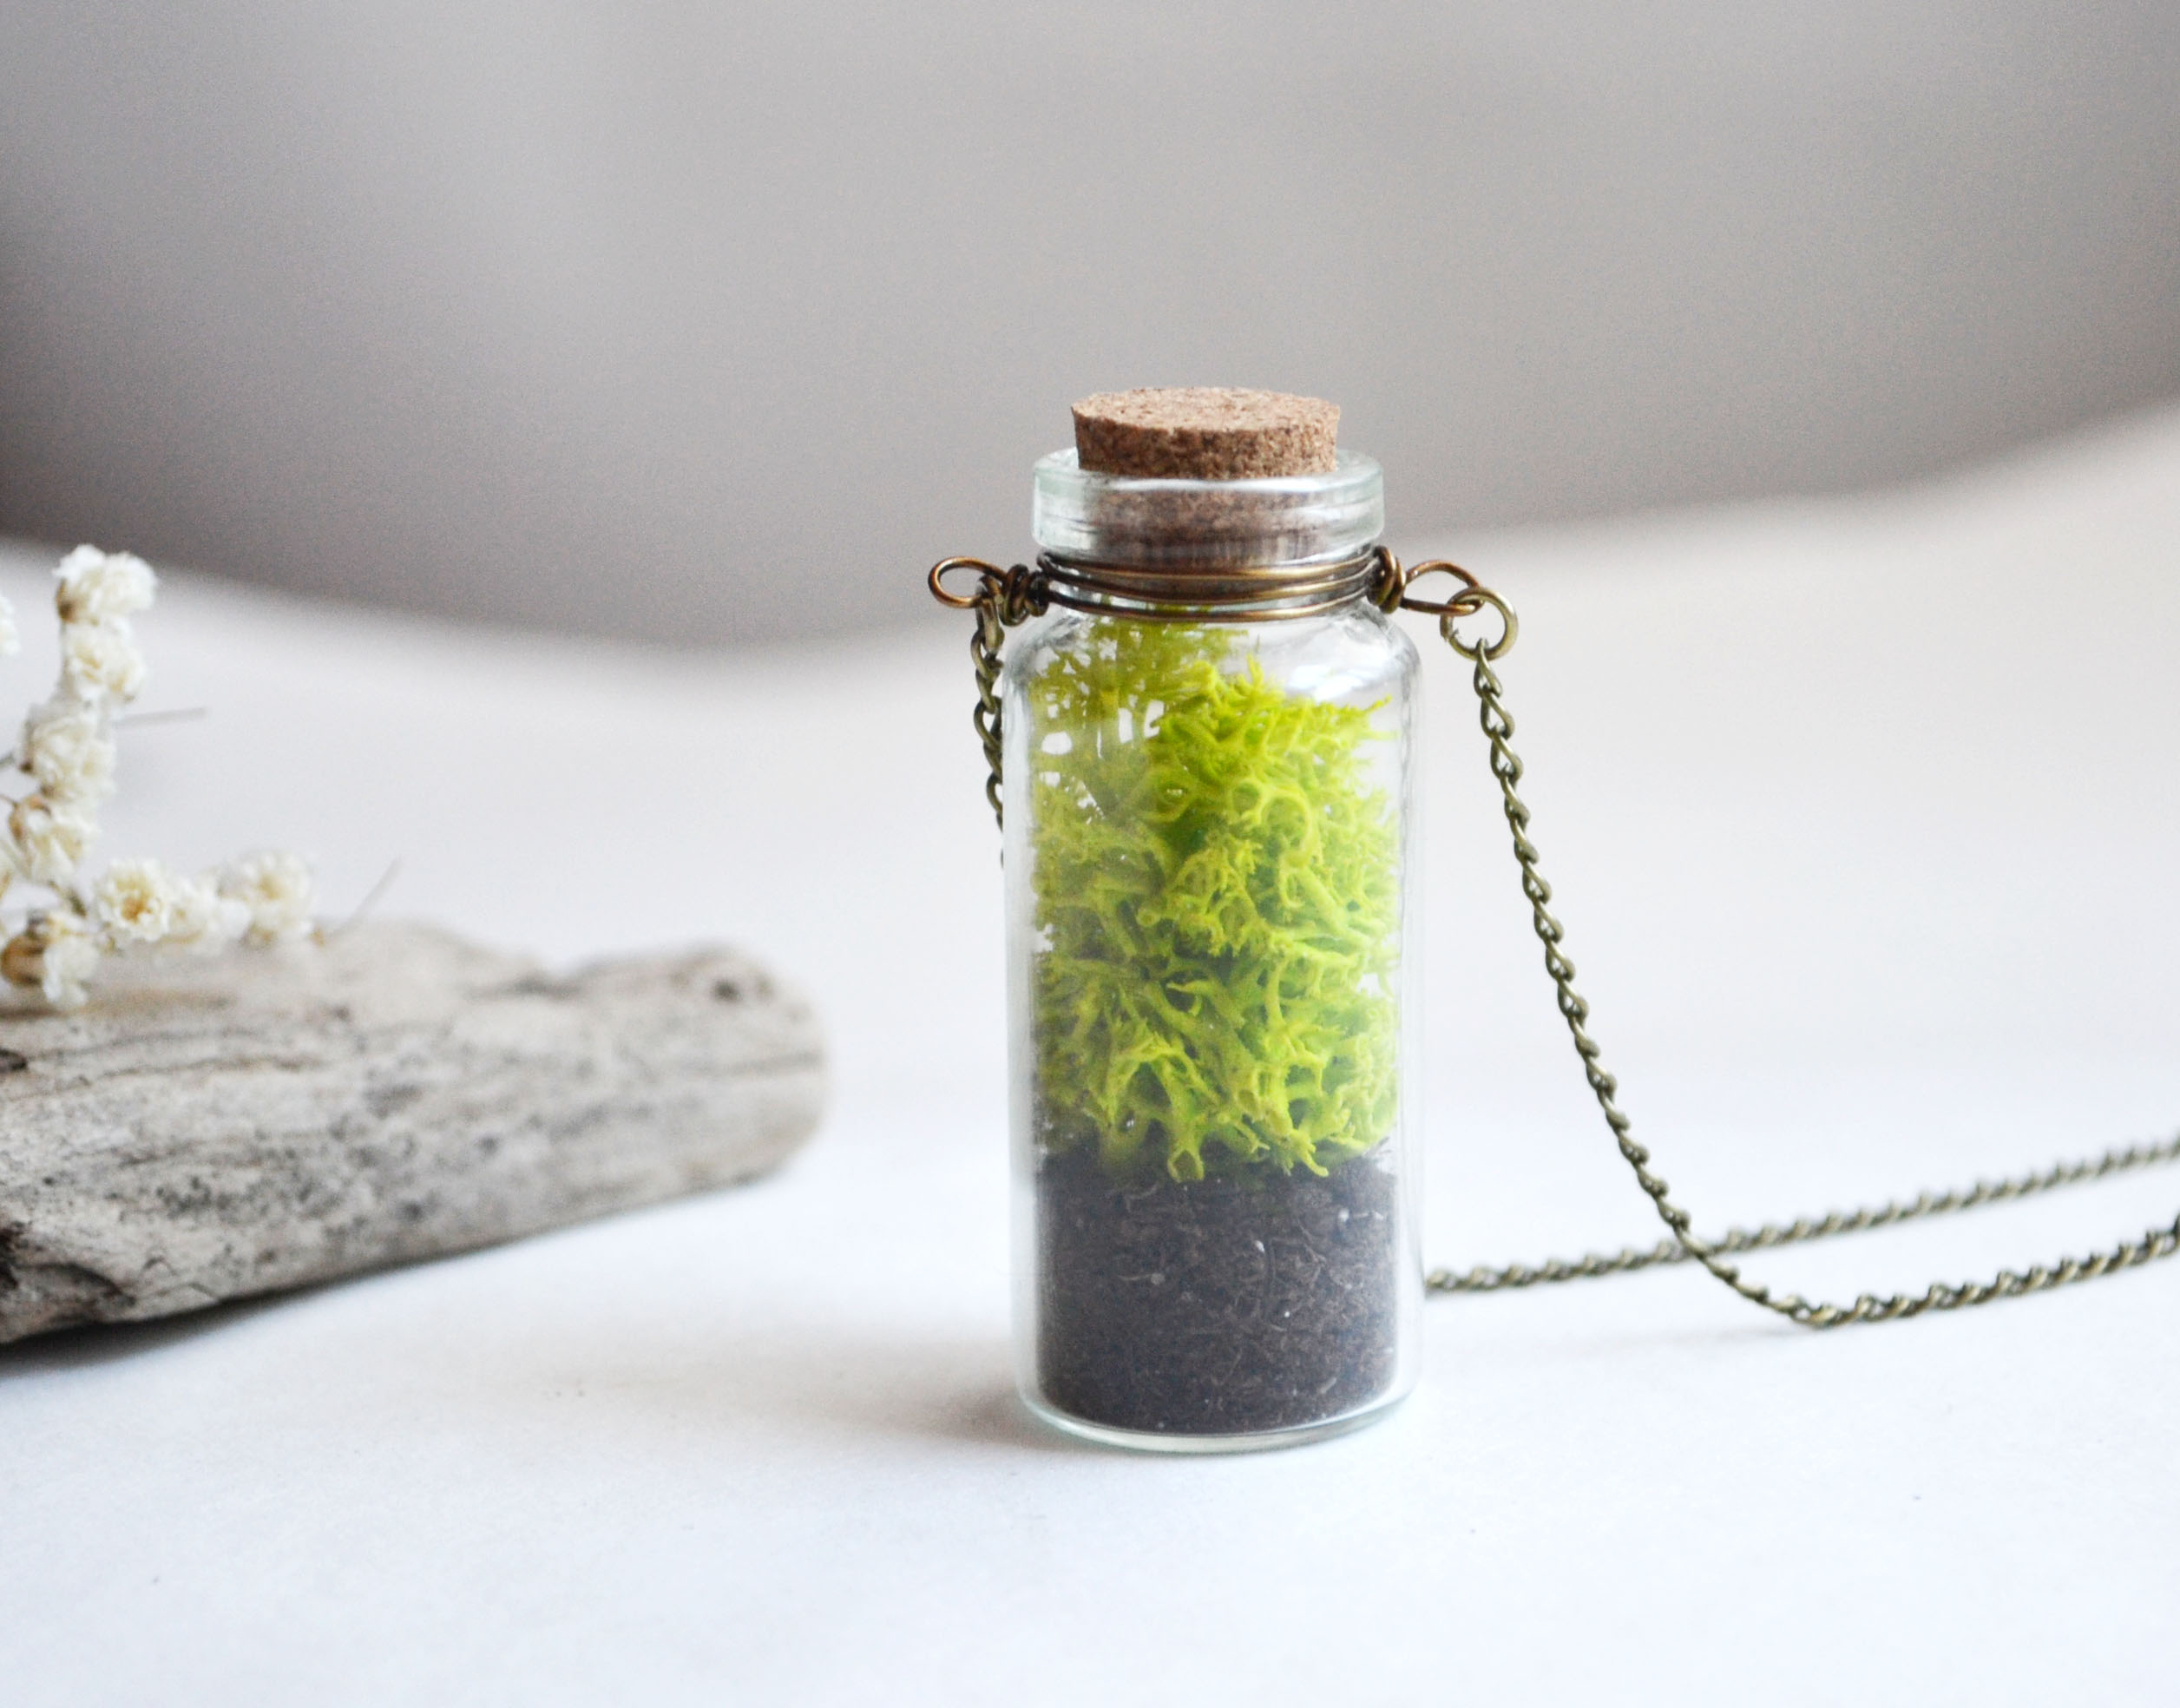 Moss necklace large moss necklace nature lover vial necklace moss necklace large moss necklace nature lover vial necklace glass vial aloadofball Image collections